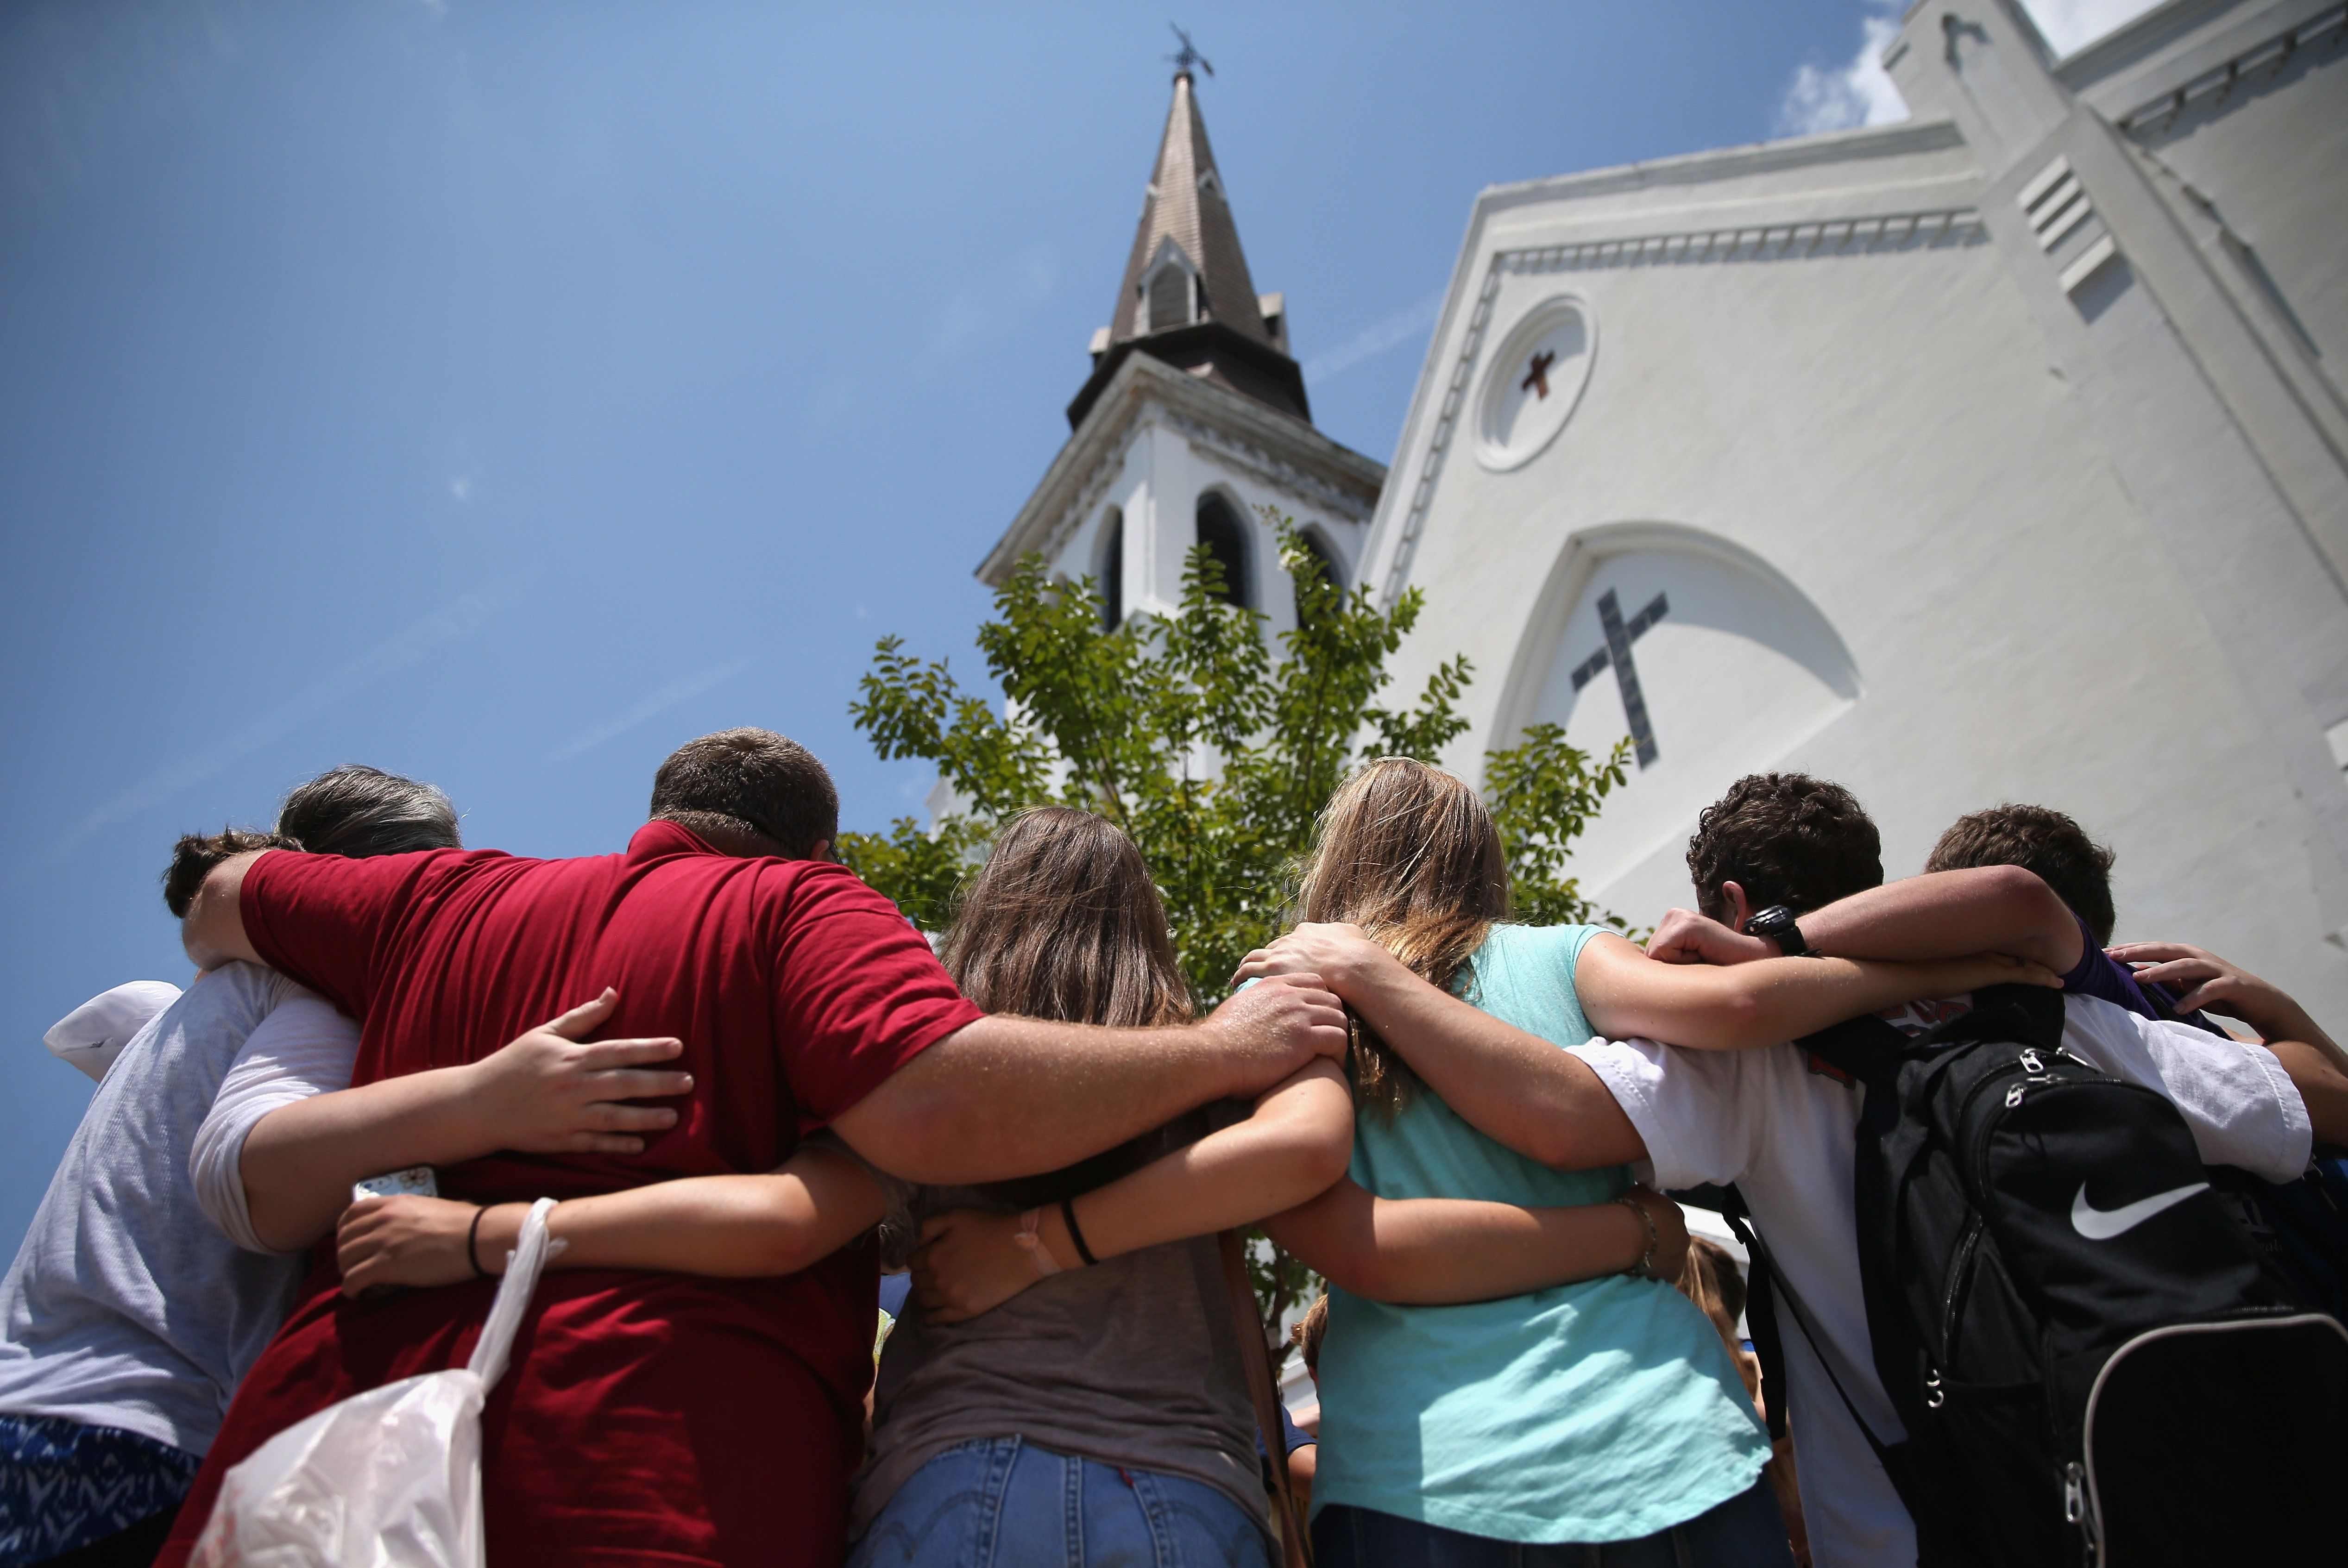 CHARLESTON, SC - JULY 17:  A church youth group from Dothan, Alabama prays in front of the Emanuel AME Church on the one-month anniversary of the mass shooting on July 17, 2015 in Charleston, South Carolina. Visitors from around the nation continue to visit a makeshift shrine in front of the church, in a show of faith and solidarity with 'Mother Emanuel', as the church is known in Charleston. Nine people were allegedly murdered on June 17 by 21-year-old white supremacist Dylann Roof, who was captured by police in North Carolina the following day. He is scheduled to go to trial July 11, 2016.(Photo by John Moore/Getty Images)